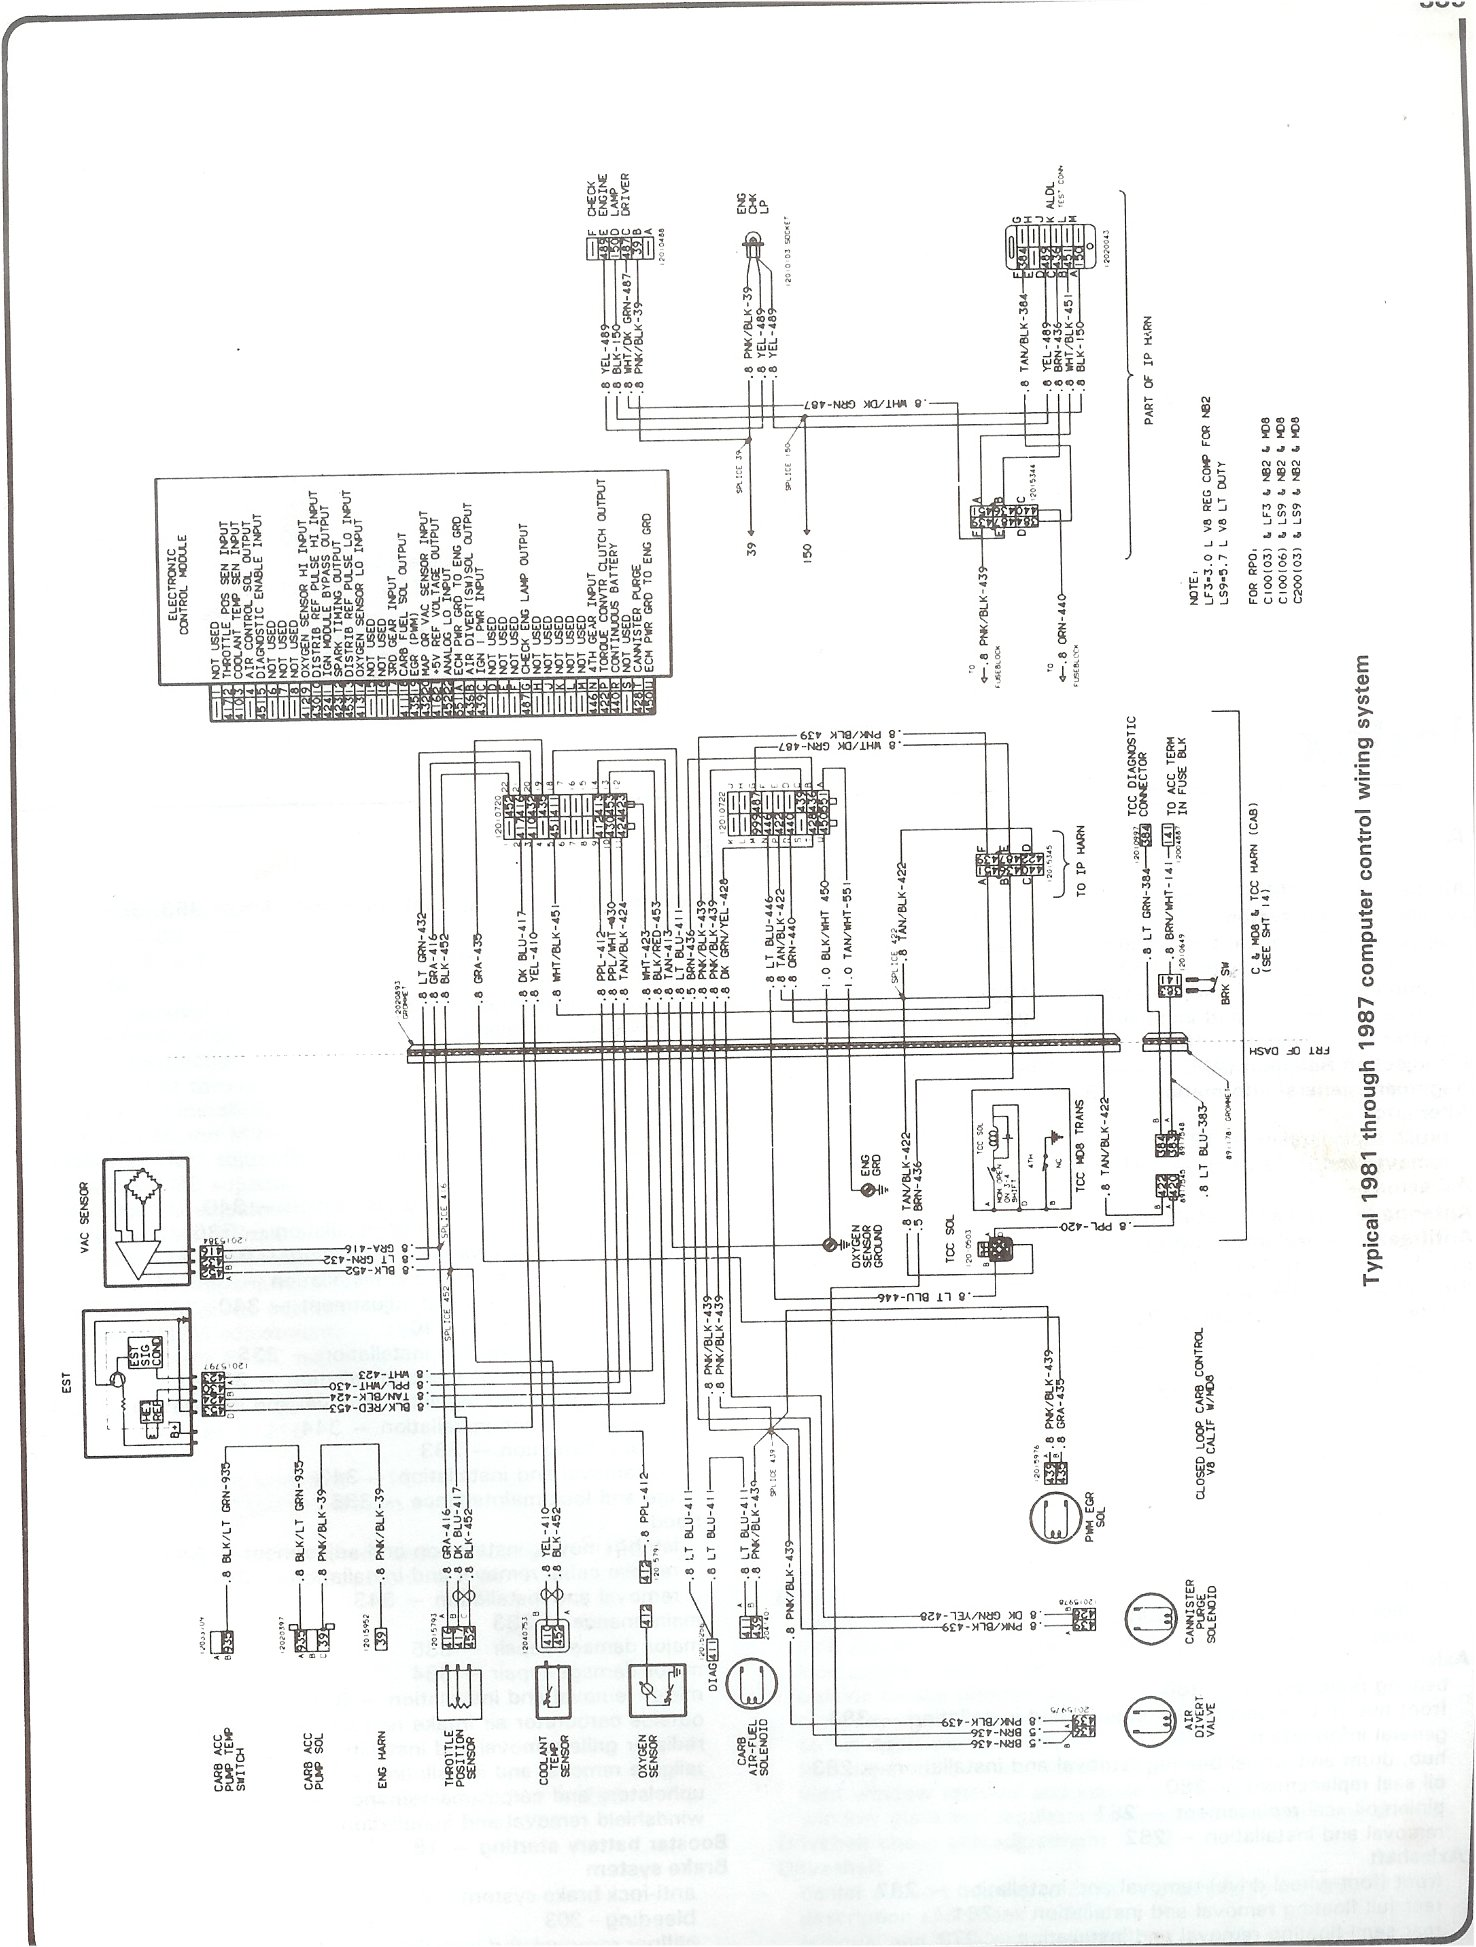 81 87_computer_control_wiring complete 73 87 wiring diagrams chevy truck wiring harness at fashall.co